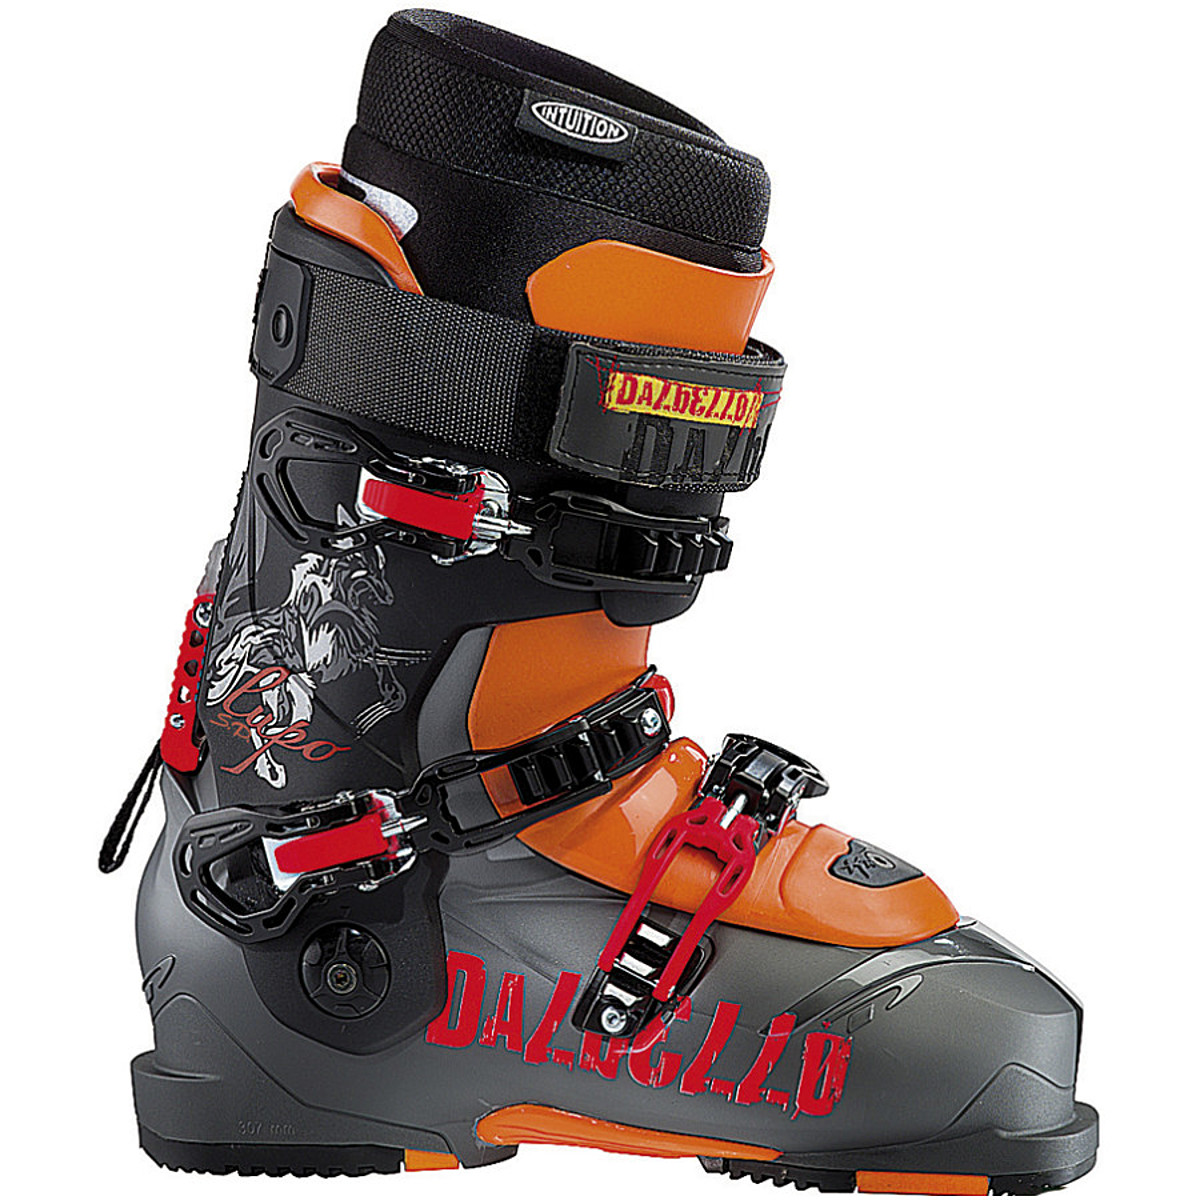 photo: Dalbello KR 2 - Lupo SP I.D. alpine touring boot